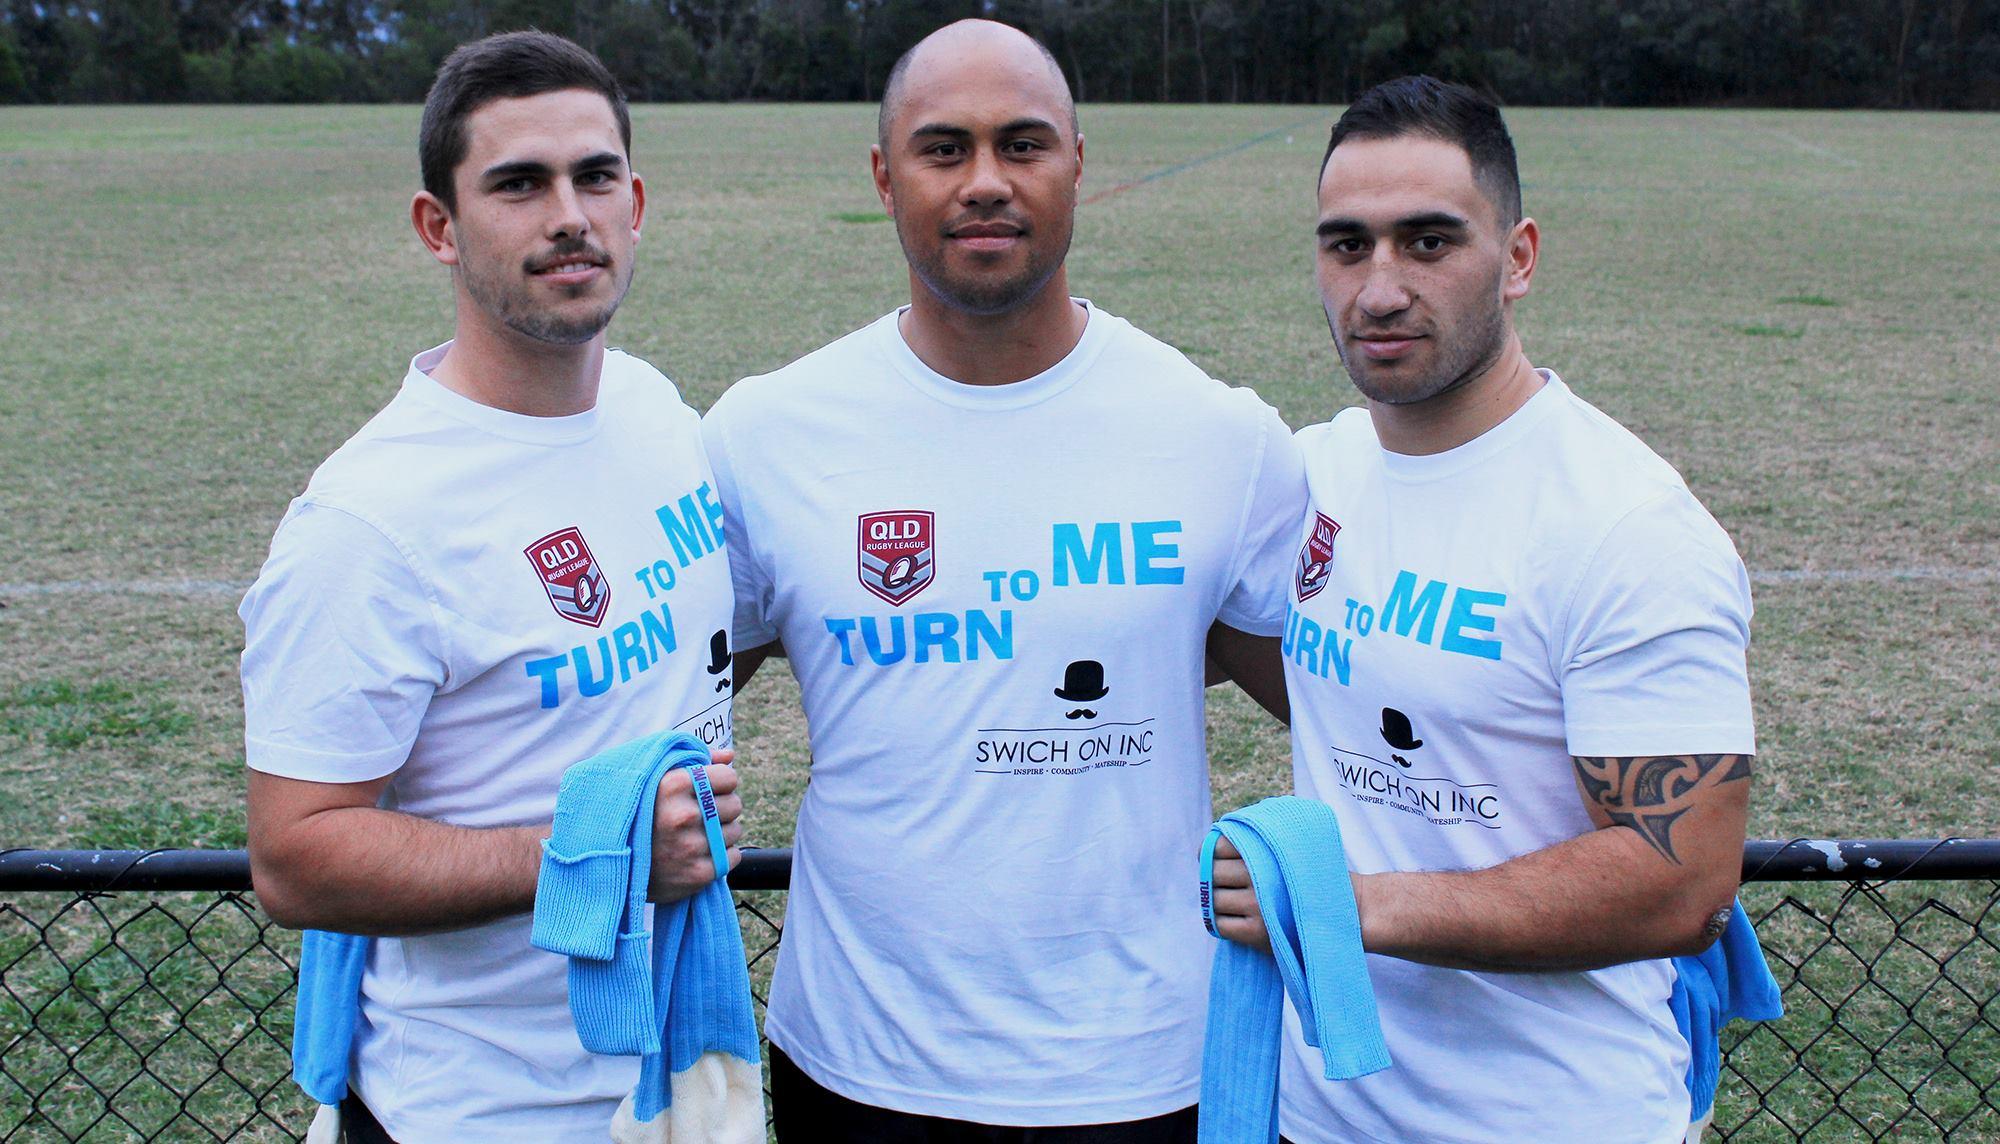 Souths Logan Players, Jack Joass, Leon Panapa & Dan Tamou proud to don the Swich On Inc T-Shirt at this weekend's QRL Turn To Me round. July's Turn To Me Luncheon was a great success and again raised awareness of men's health through the Turn To Me initiative.